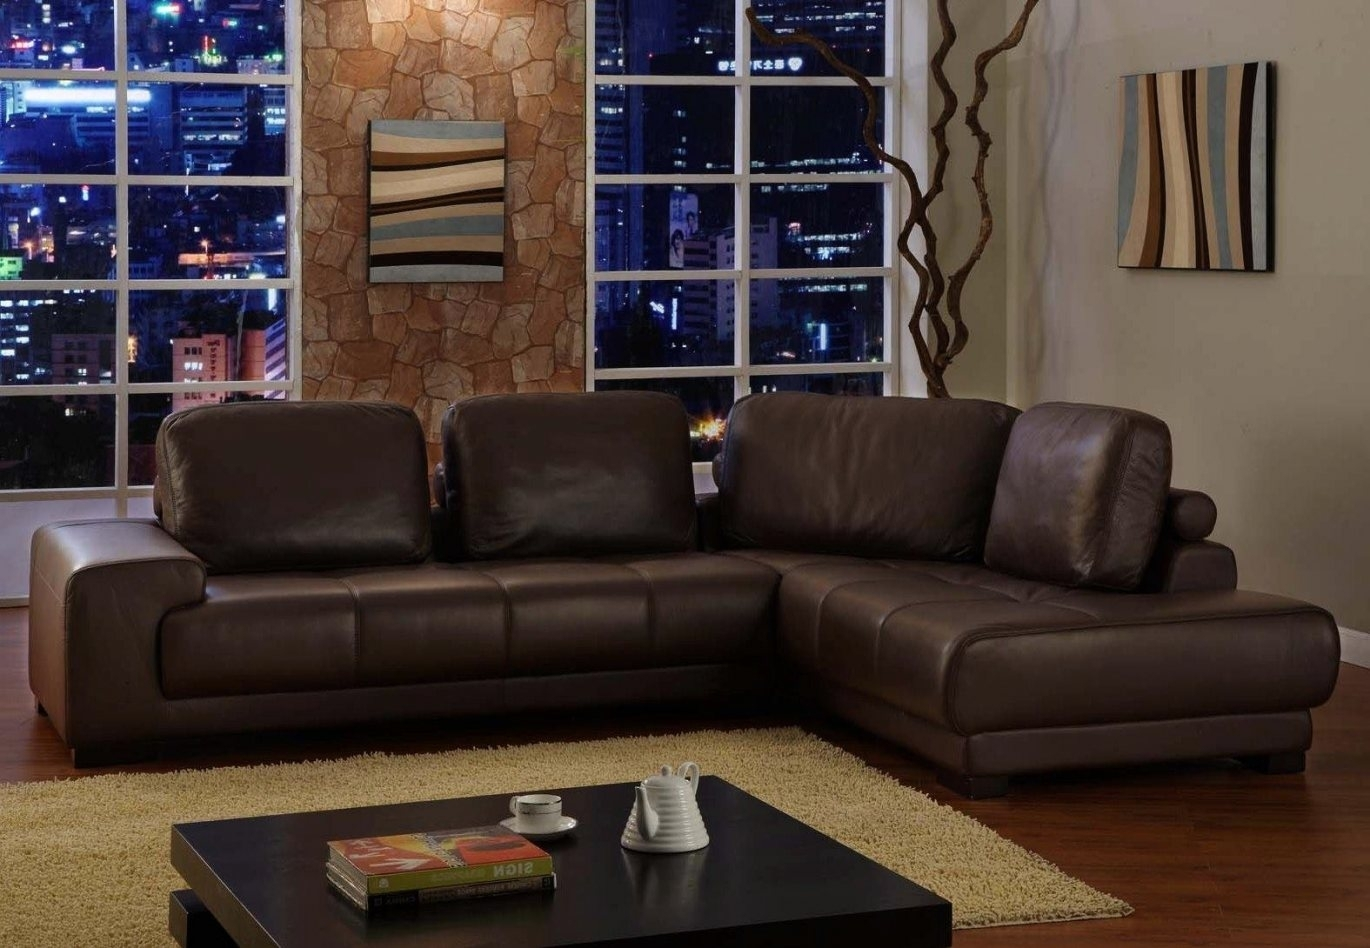 Appealing Brown Leather Sectional Sofa Clearance For The Brick Pics With Regard To Clearance Sectional Sofas (Image 1 of 10)